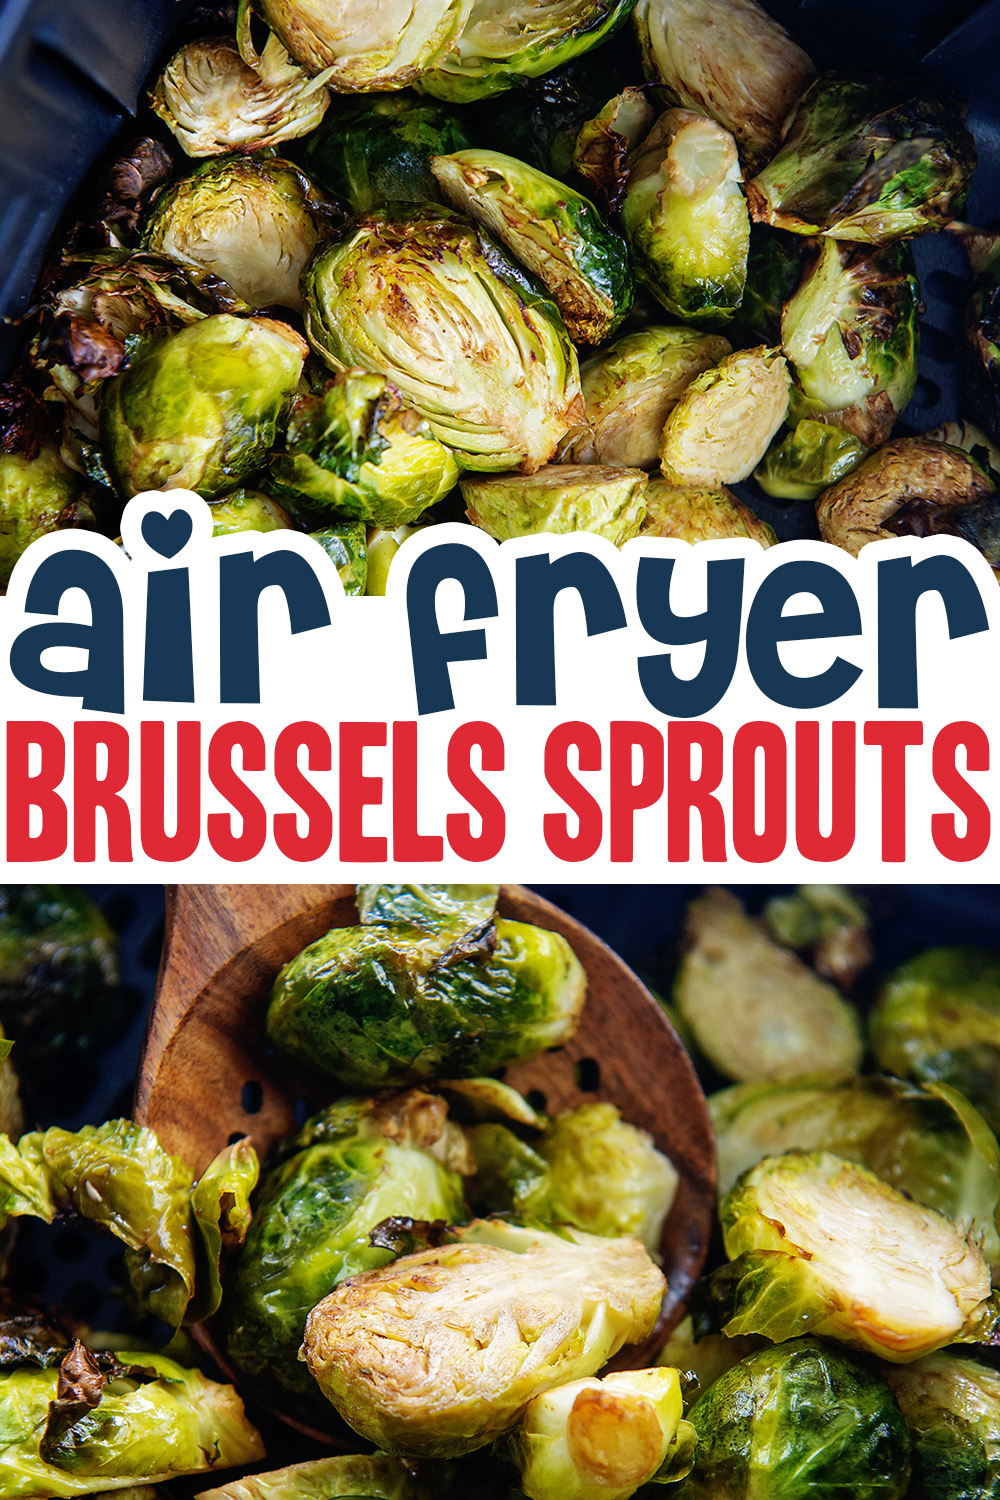 Chedk out these air fried brussels sprouts for a healthy side dish!